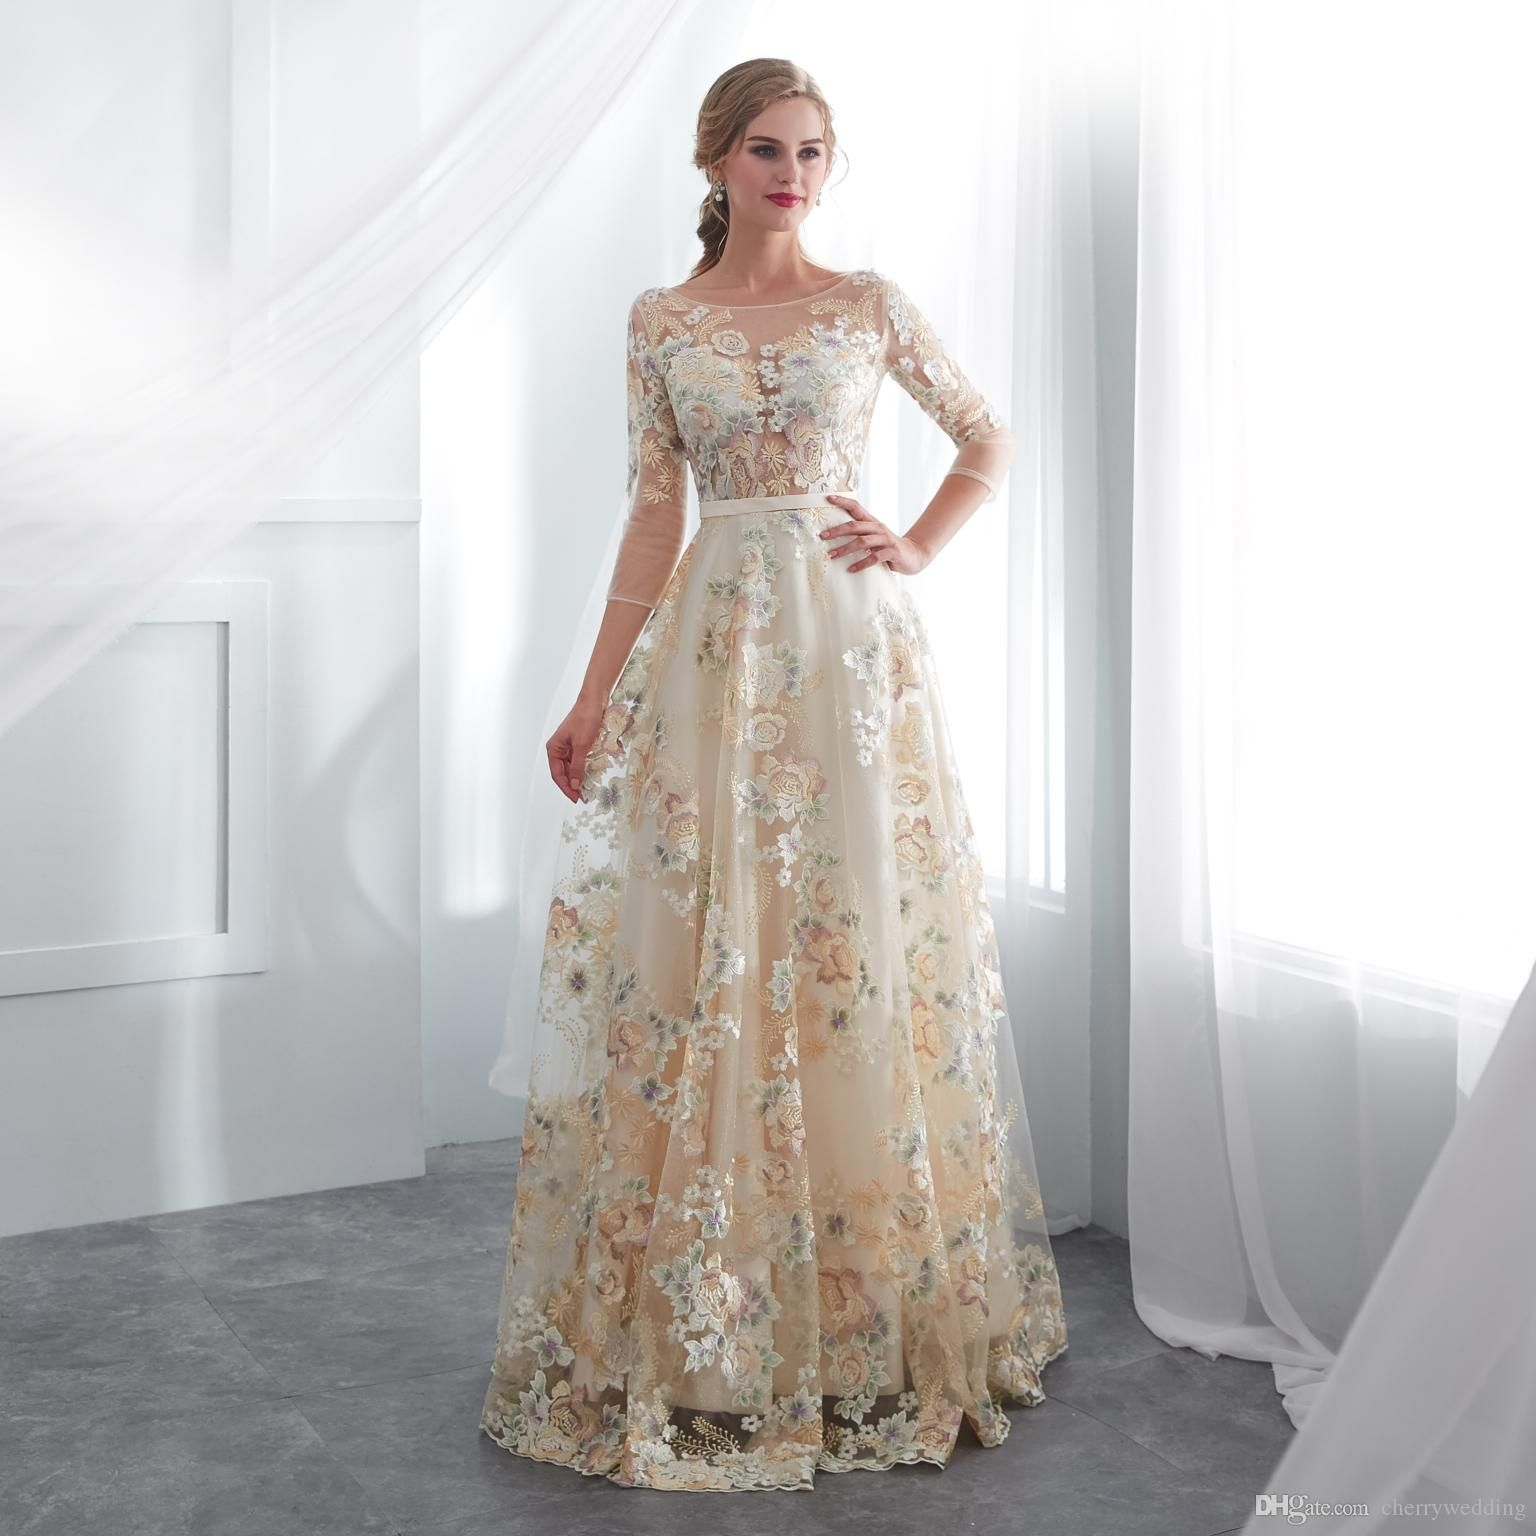 Colored Wedding Dresses Long Sleeves Lace Romantic Bridal Gowns Country Wedding Dress Custom Made Rob Robe Mariee 23e007 From Cherrywedding 93 47 Dhgate Com Floral Prom Dresses Wedding Dress Long Sleeve Long [ 1536 x 1536 Pixel ]